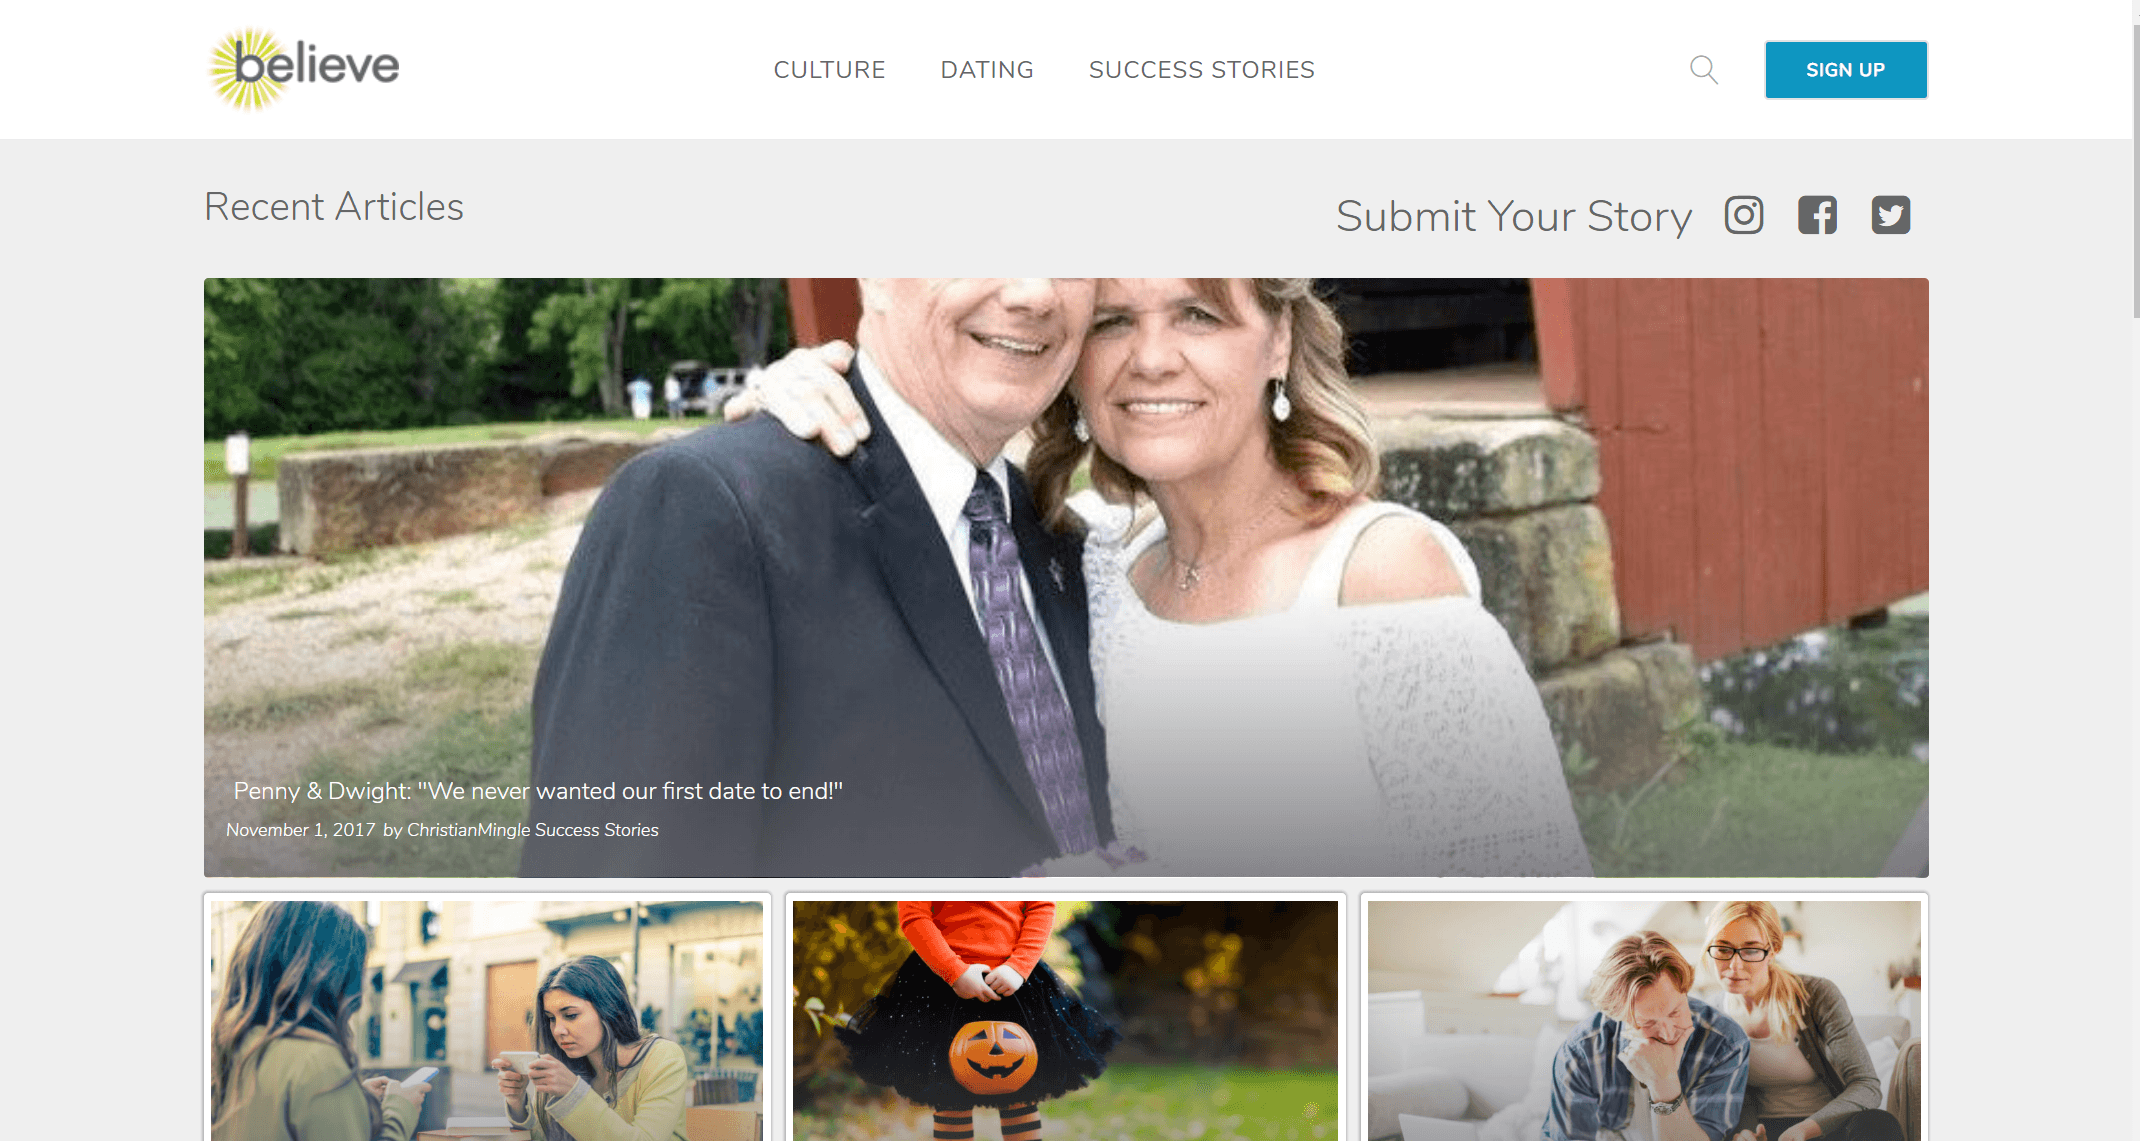 Believe by Christian Mingle - Review